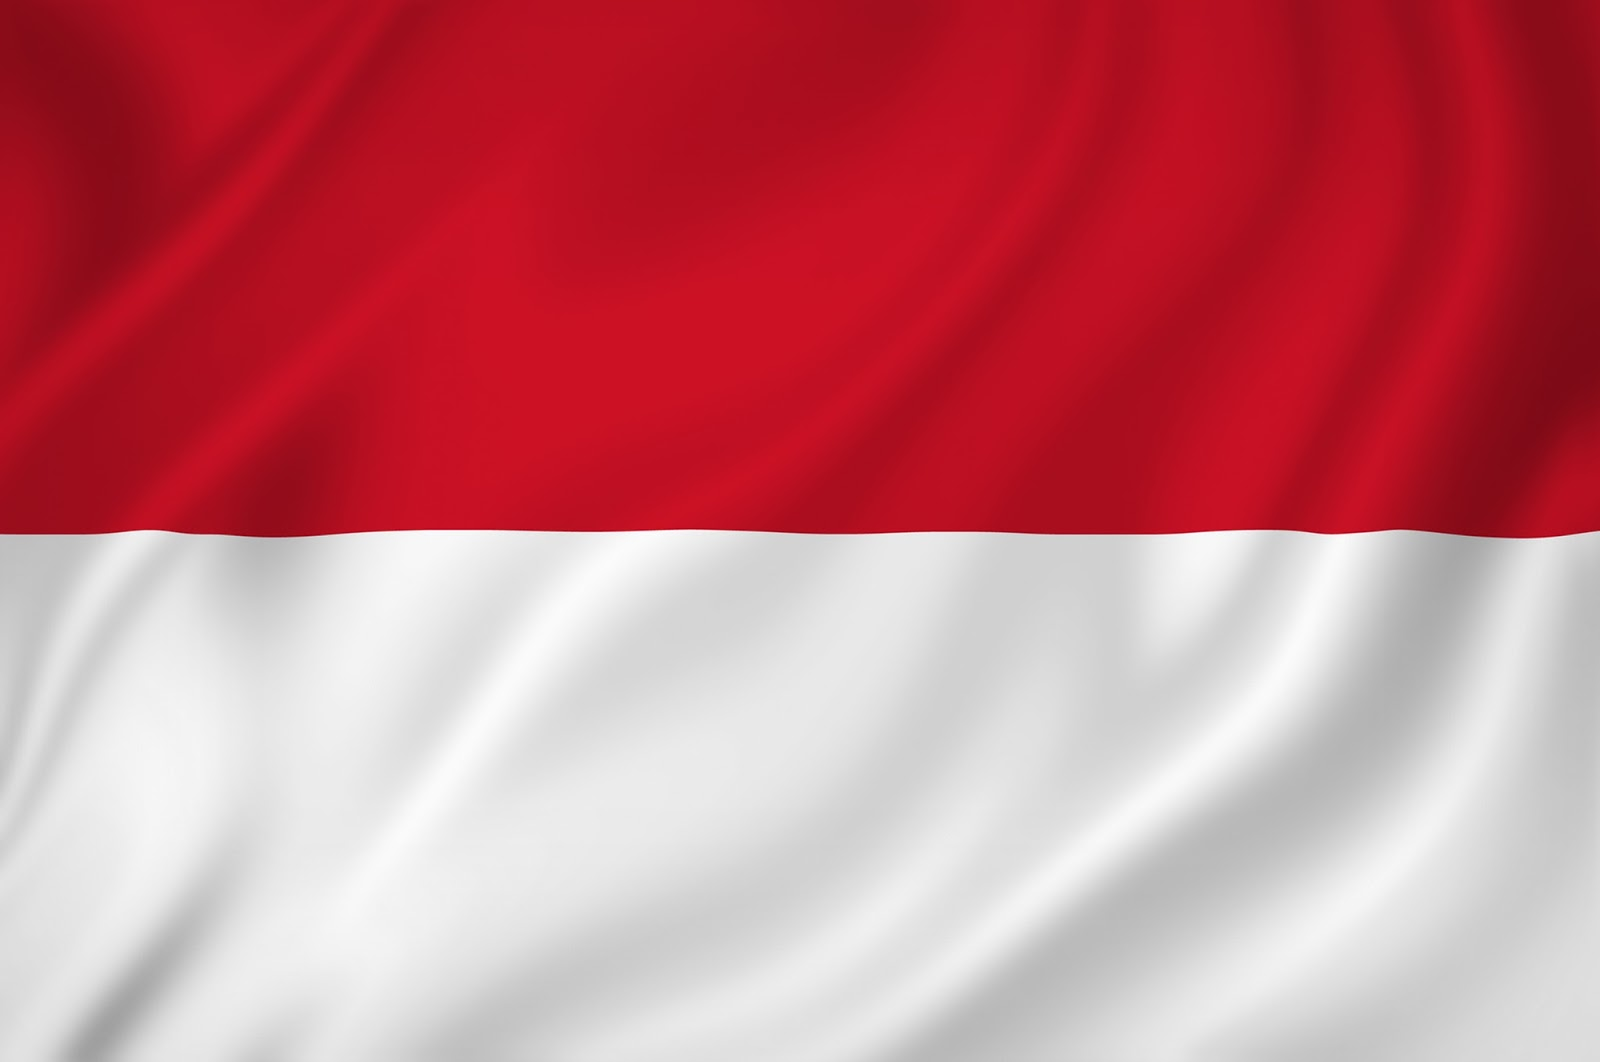 bendera merah putih bitmap 1600x1062 download hd wallpaper wallpapertip bendera merah putih bitmap 1600x1062